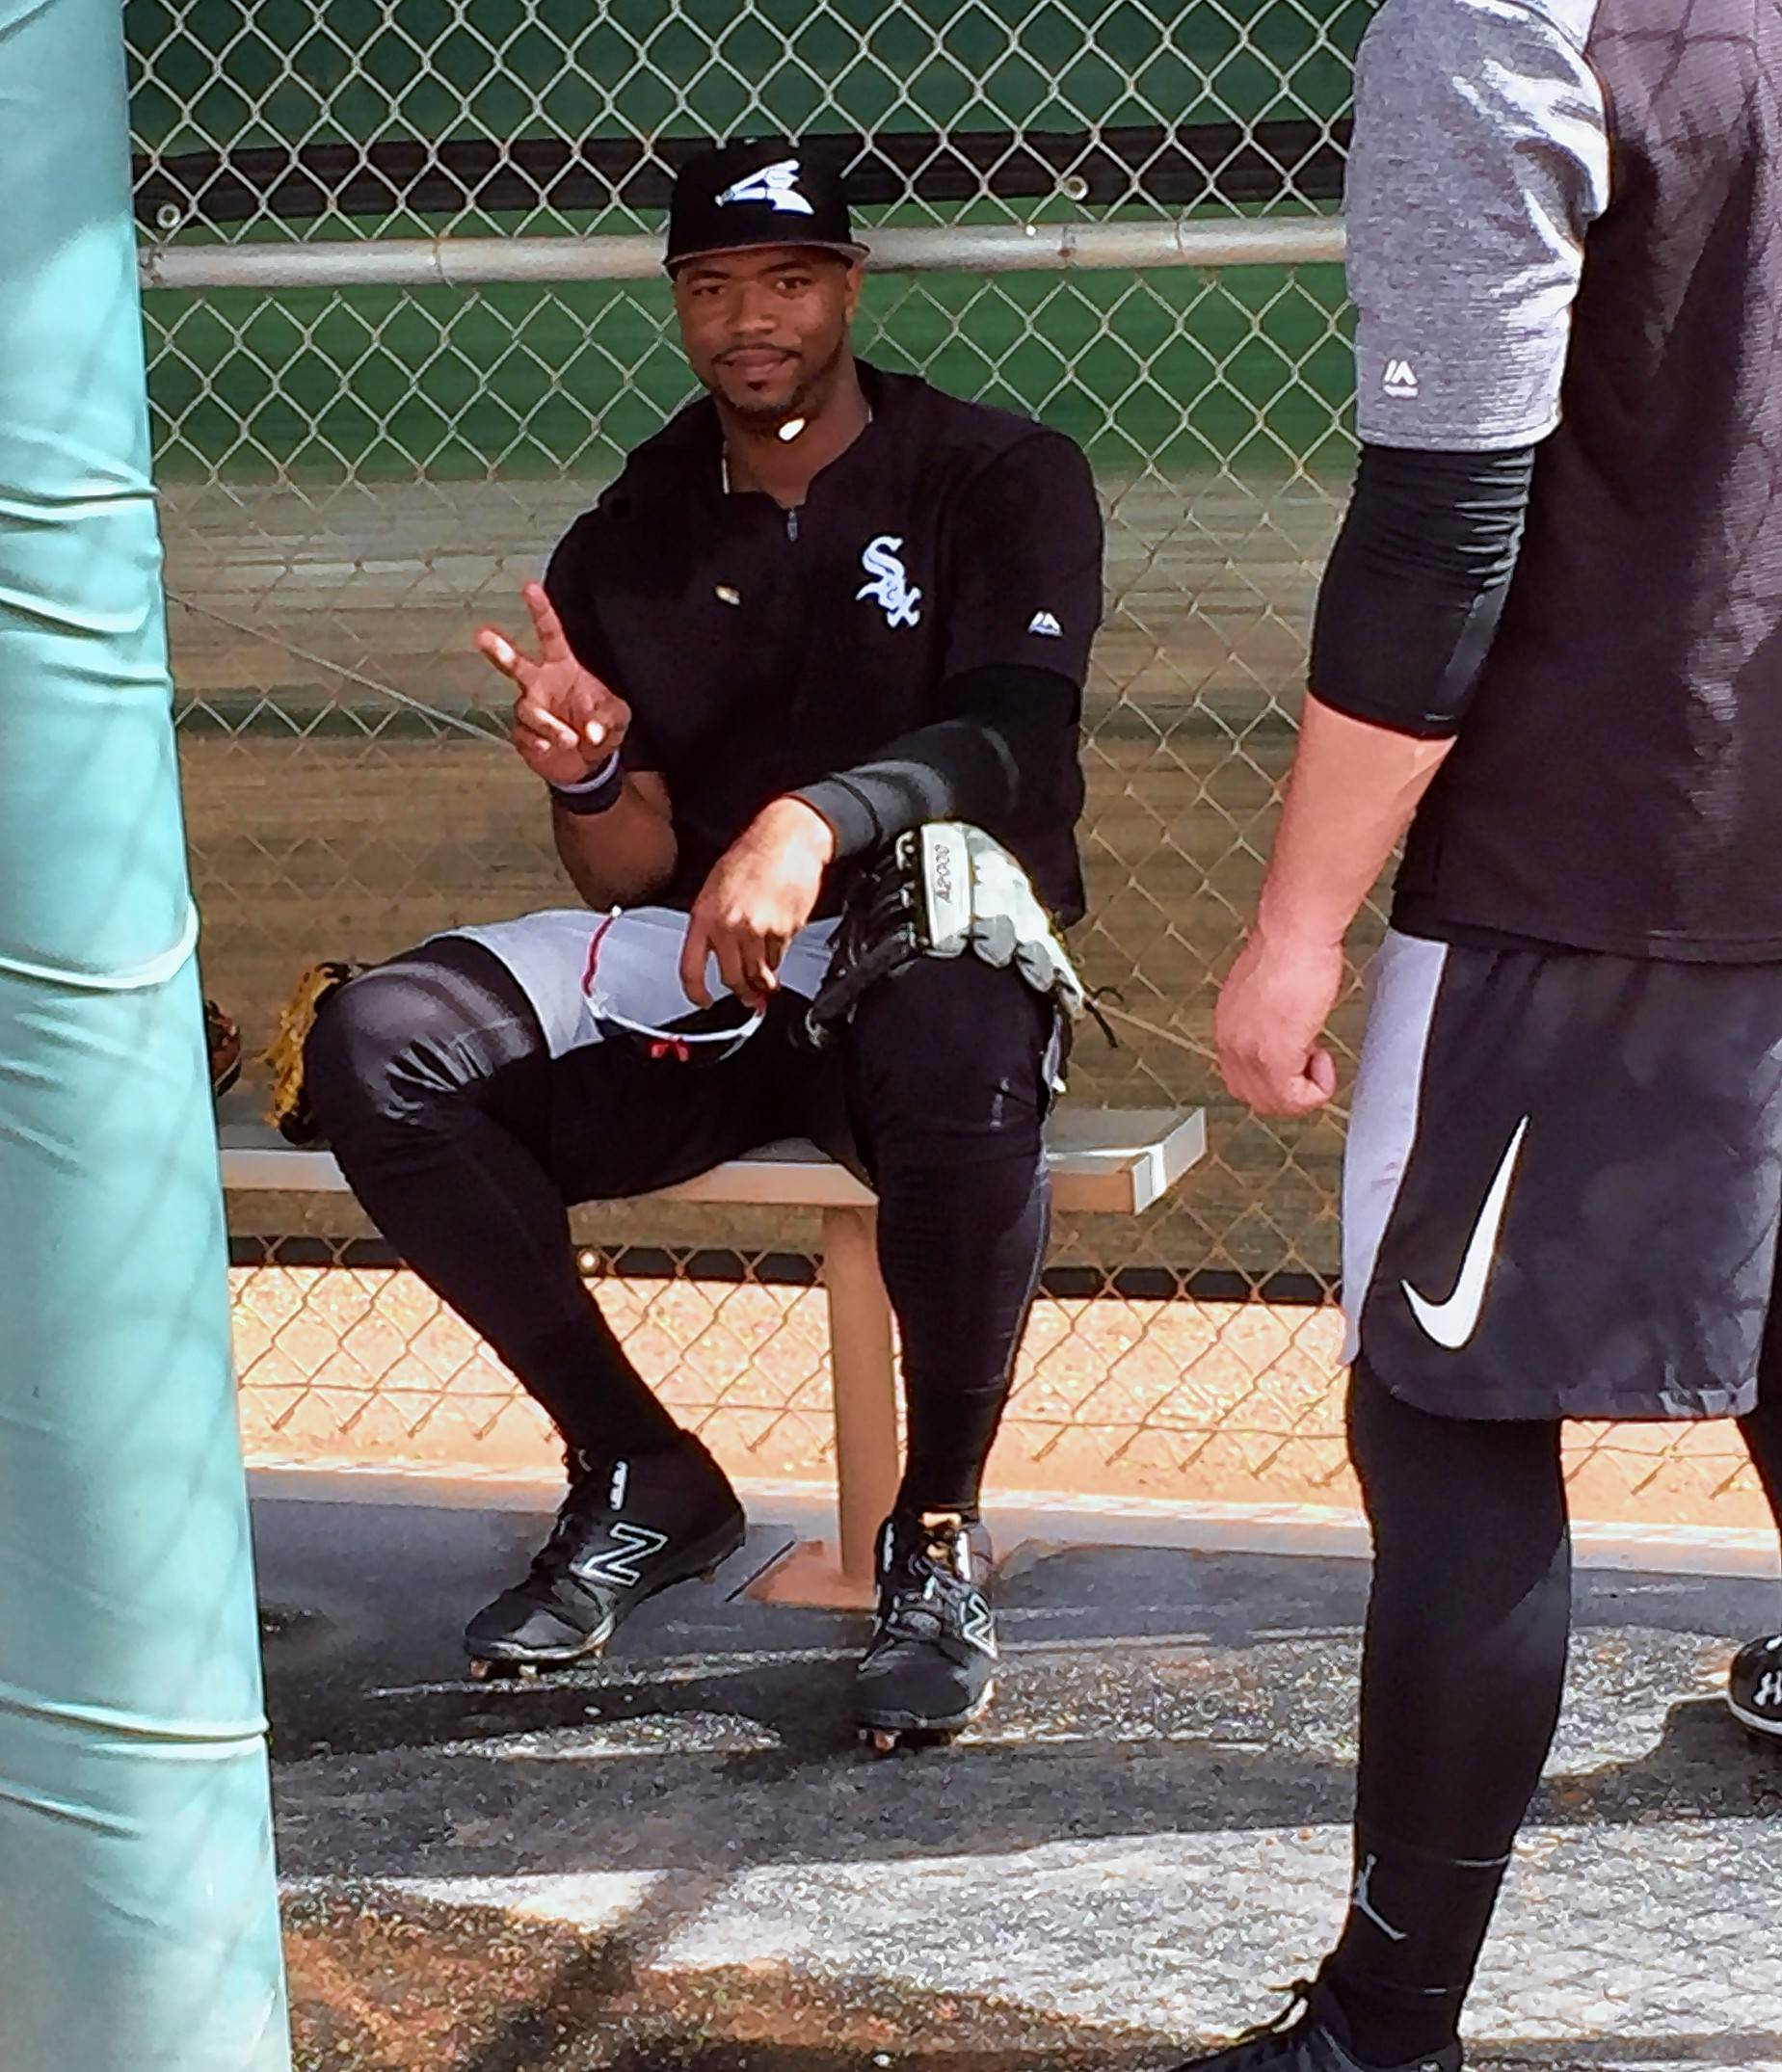 Eloy Jimenez is at peace during a spring training break this week in Glendale, Ariz.